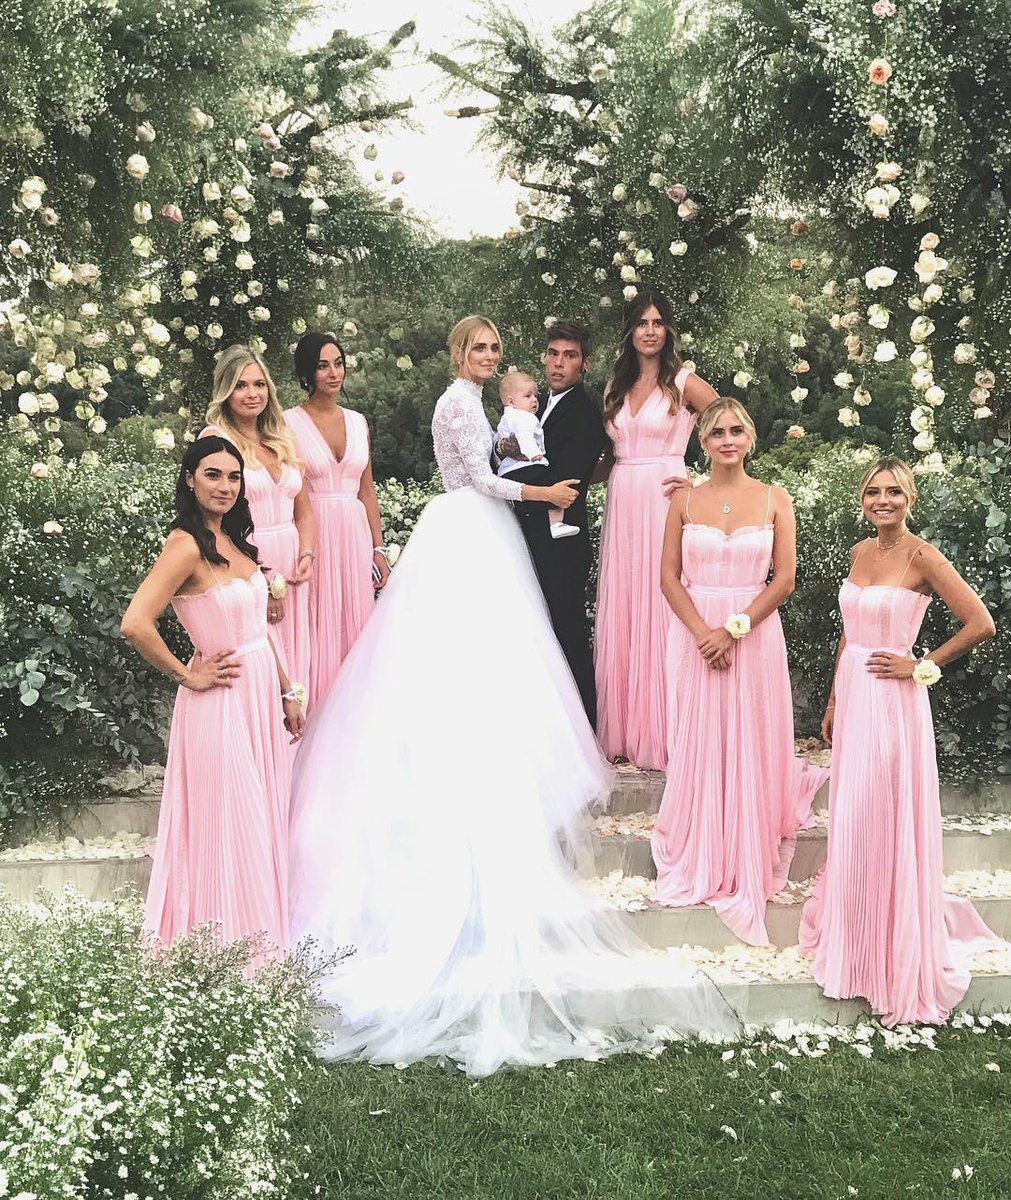 Chiara Ferragni is the epitome of elegance in Dior at her wedding